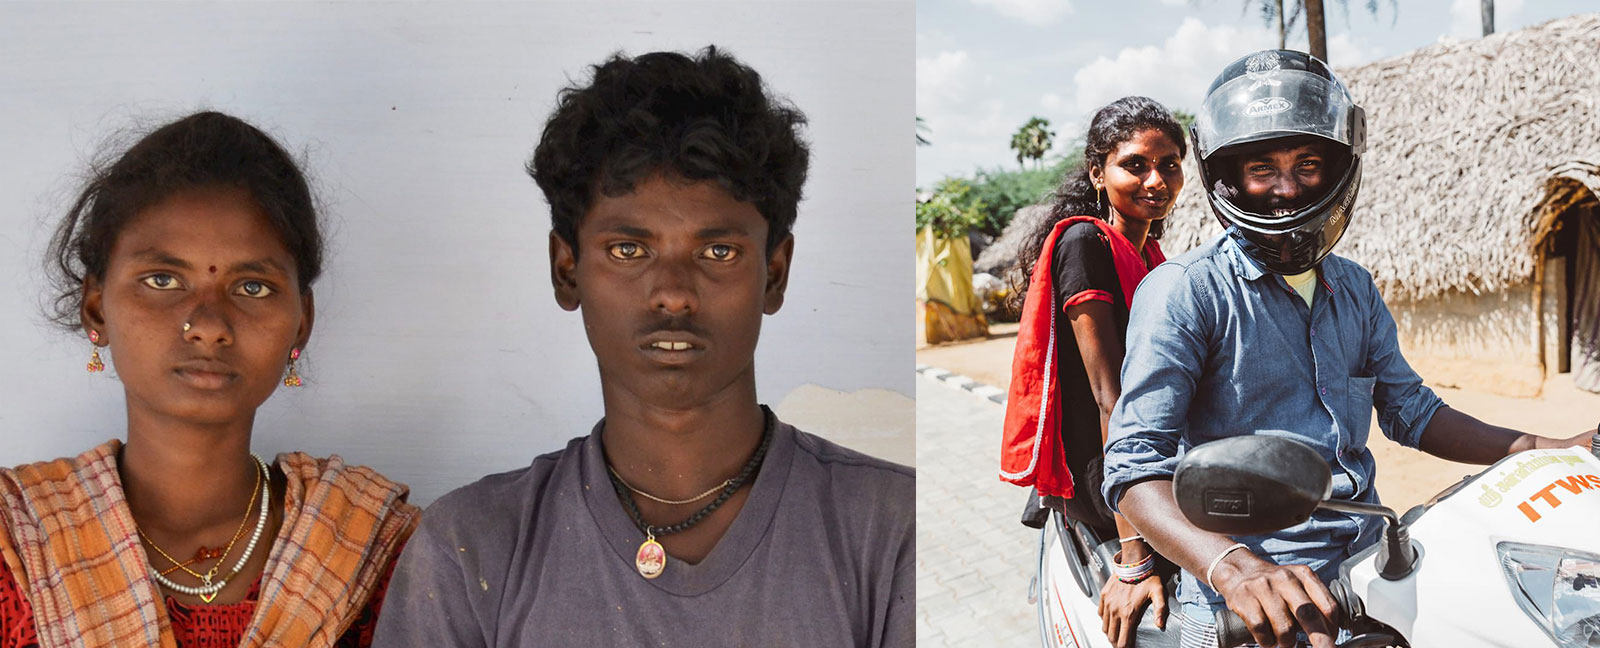 This husband and wife were trapped in slavery, who, after their rescue are now helping to rescue others.